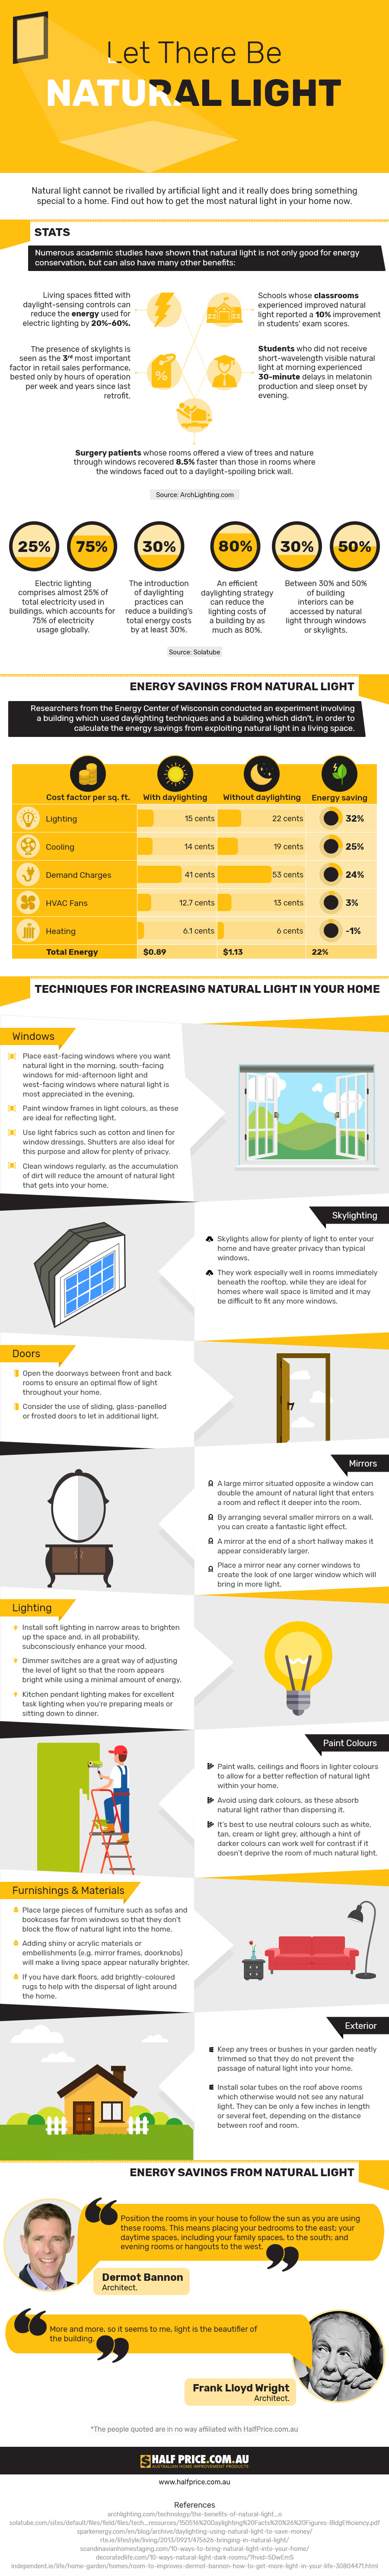 benefits of maximizing natural light in the home